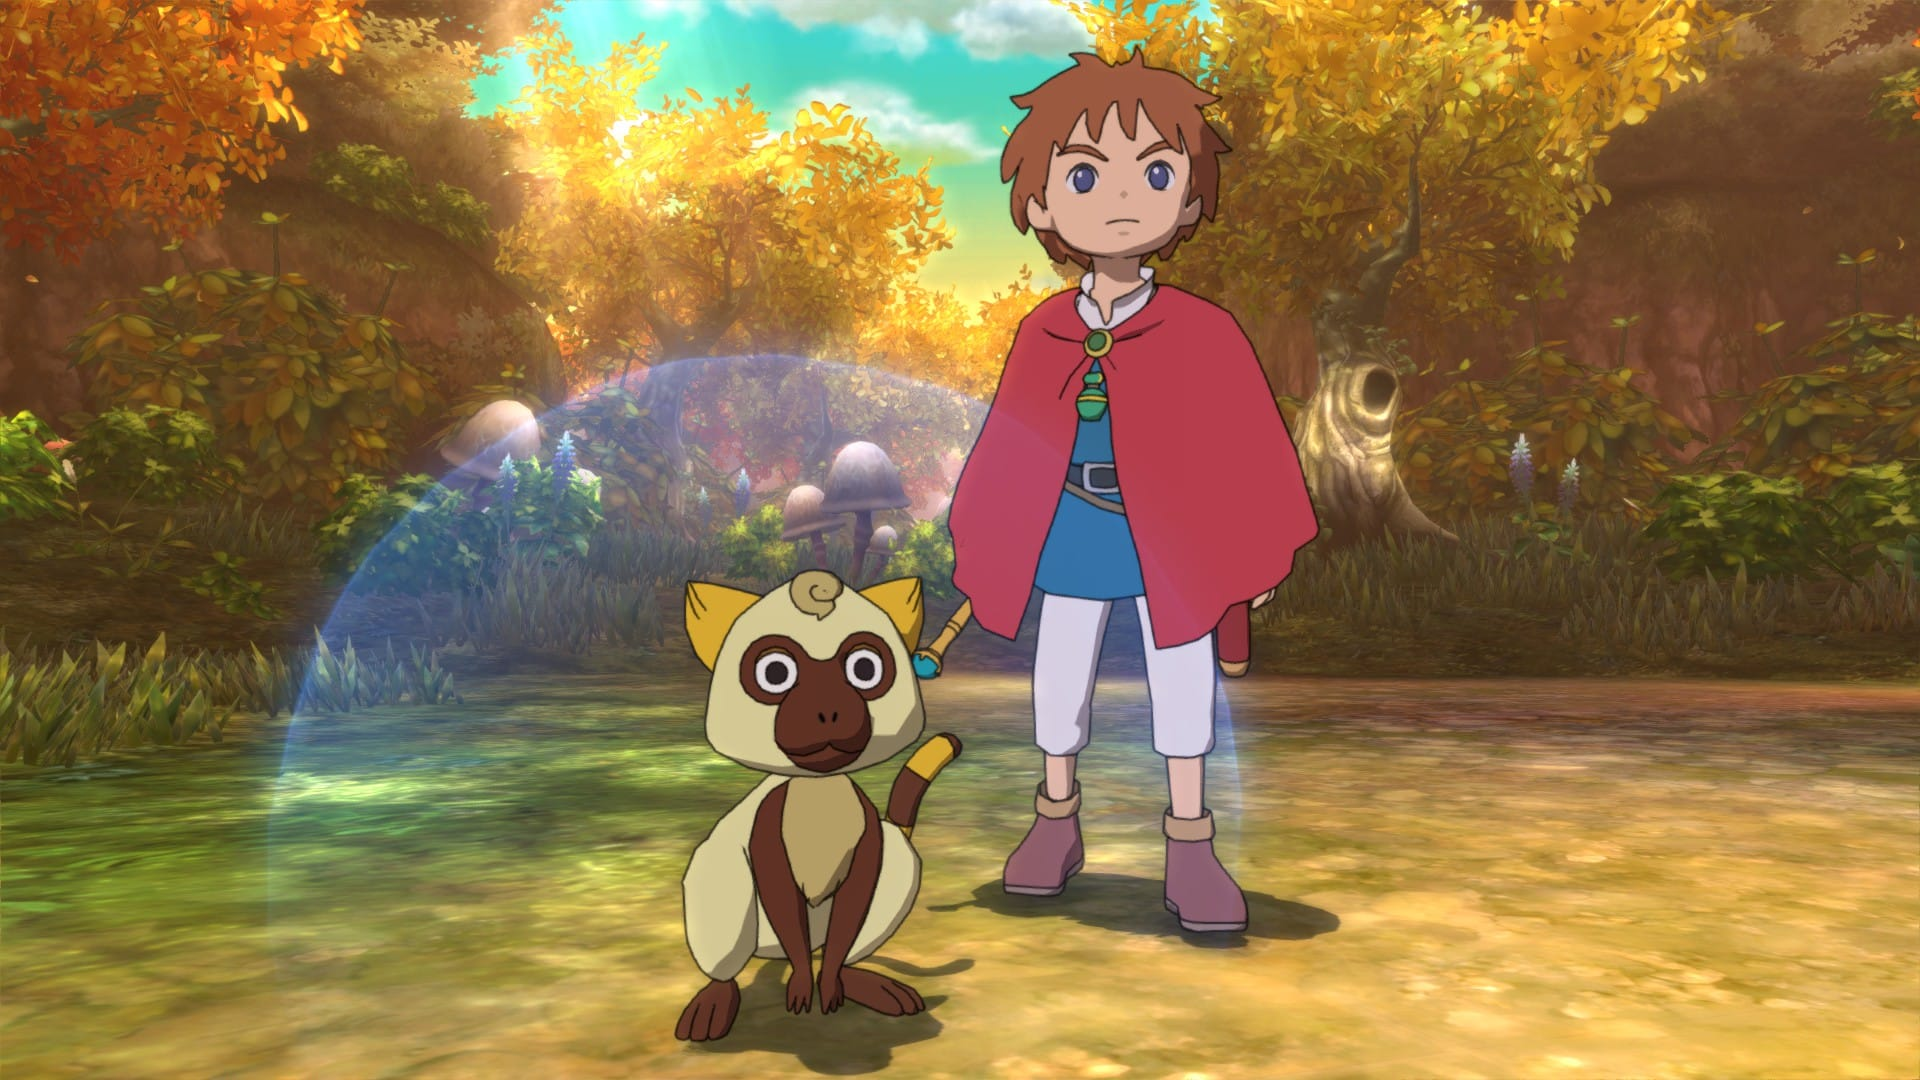 Ni no Kuni: Wrath of the White Witch Remastered video game cheating is faster and more fun